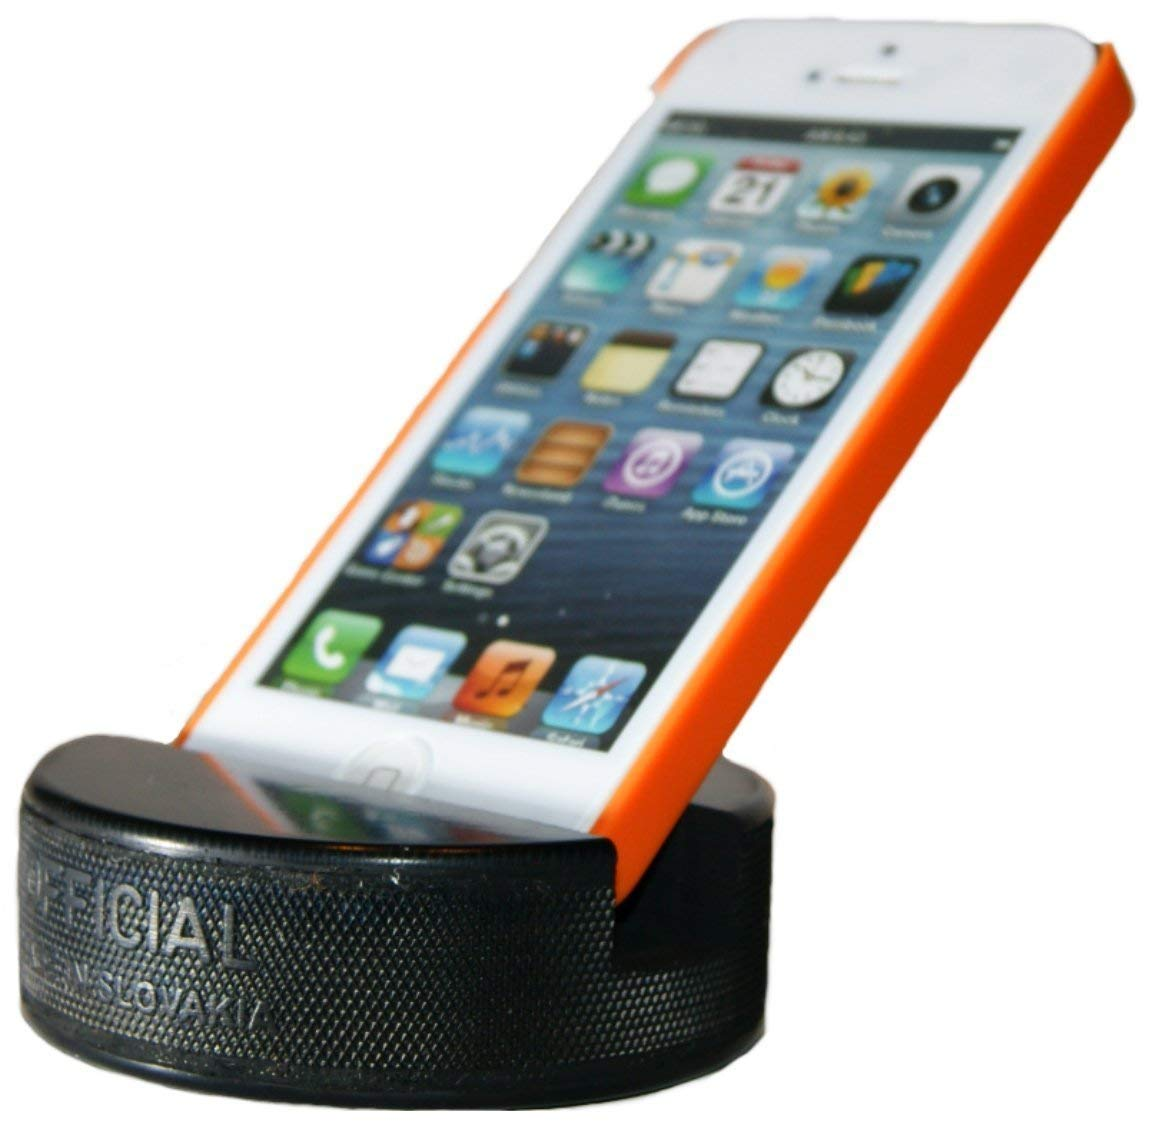 PUCKUPS - Indestructible Hockey Puck Cell Phone Stand - The Best Universal Smartphone Stand. Compatible for All iPhone/Samsung/Google/LG Smartphones. Made from a Real Hockey Puck. (4 Pack) by PuckUps